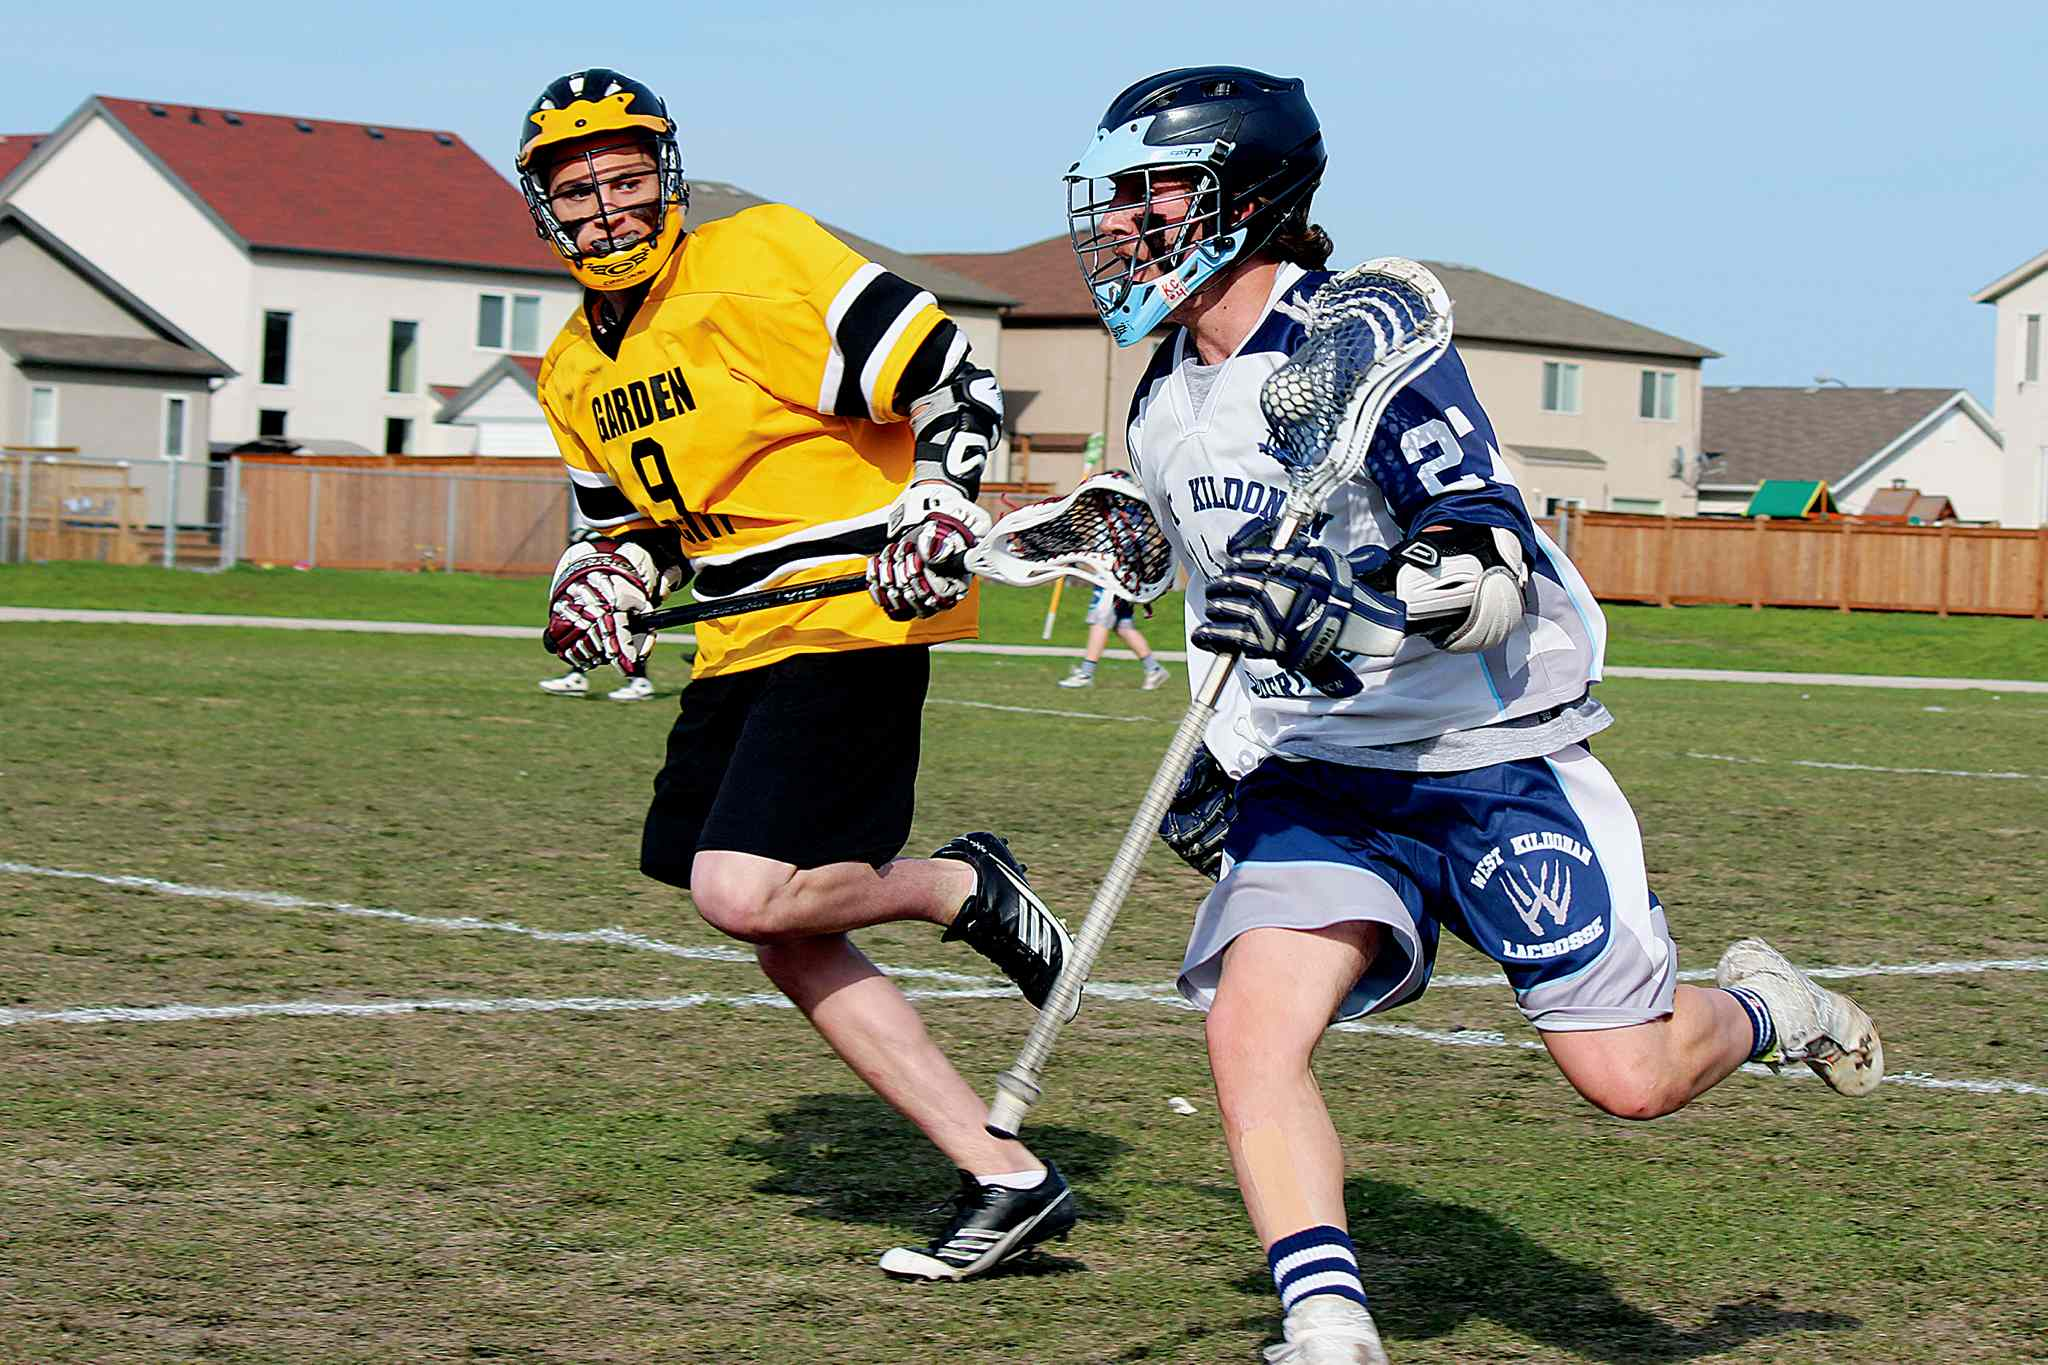 "West Kildonan Collegiate Wolverines lacrosse player Kelson Borisenko (right) in action against the Garden City Fighting Gophers on Thurs., May 22 at West Kildonan Collegiate. Dubbed the KC-JD Field Lacrosse Classic, the annual game is played in honour of late Winnipeg lacrosse players Kelly Clay and Justin ""JD"" Lysack."